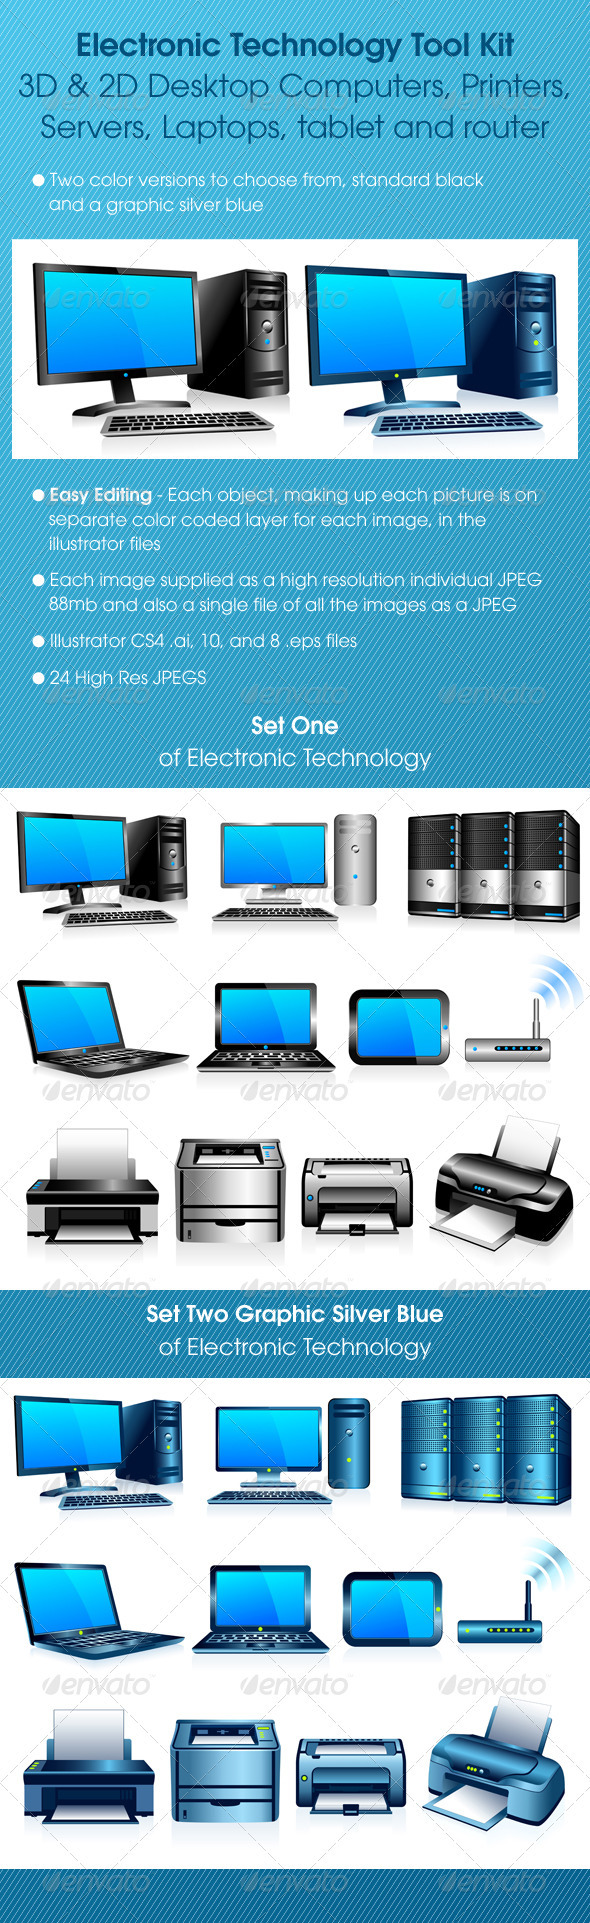 GraphicRiver Electronic Technology Computers Printers Tool Kit 1856220